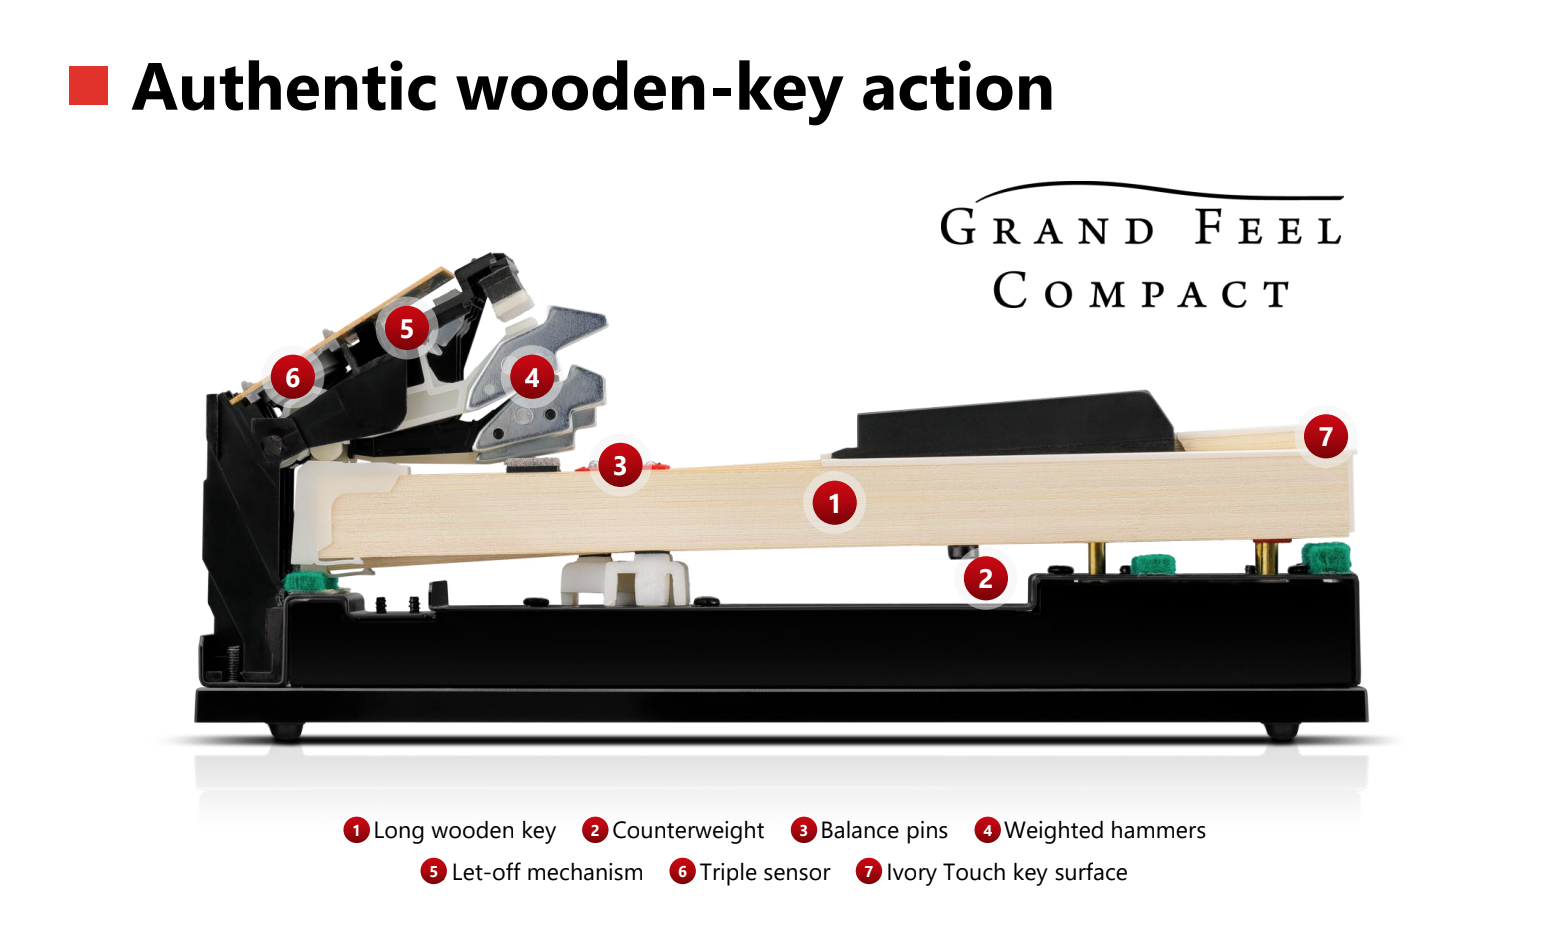 Grand Feel Compact wooden-key keyboard action for the Kawai CA49 and CA59 digital pianos